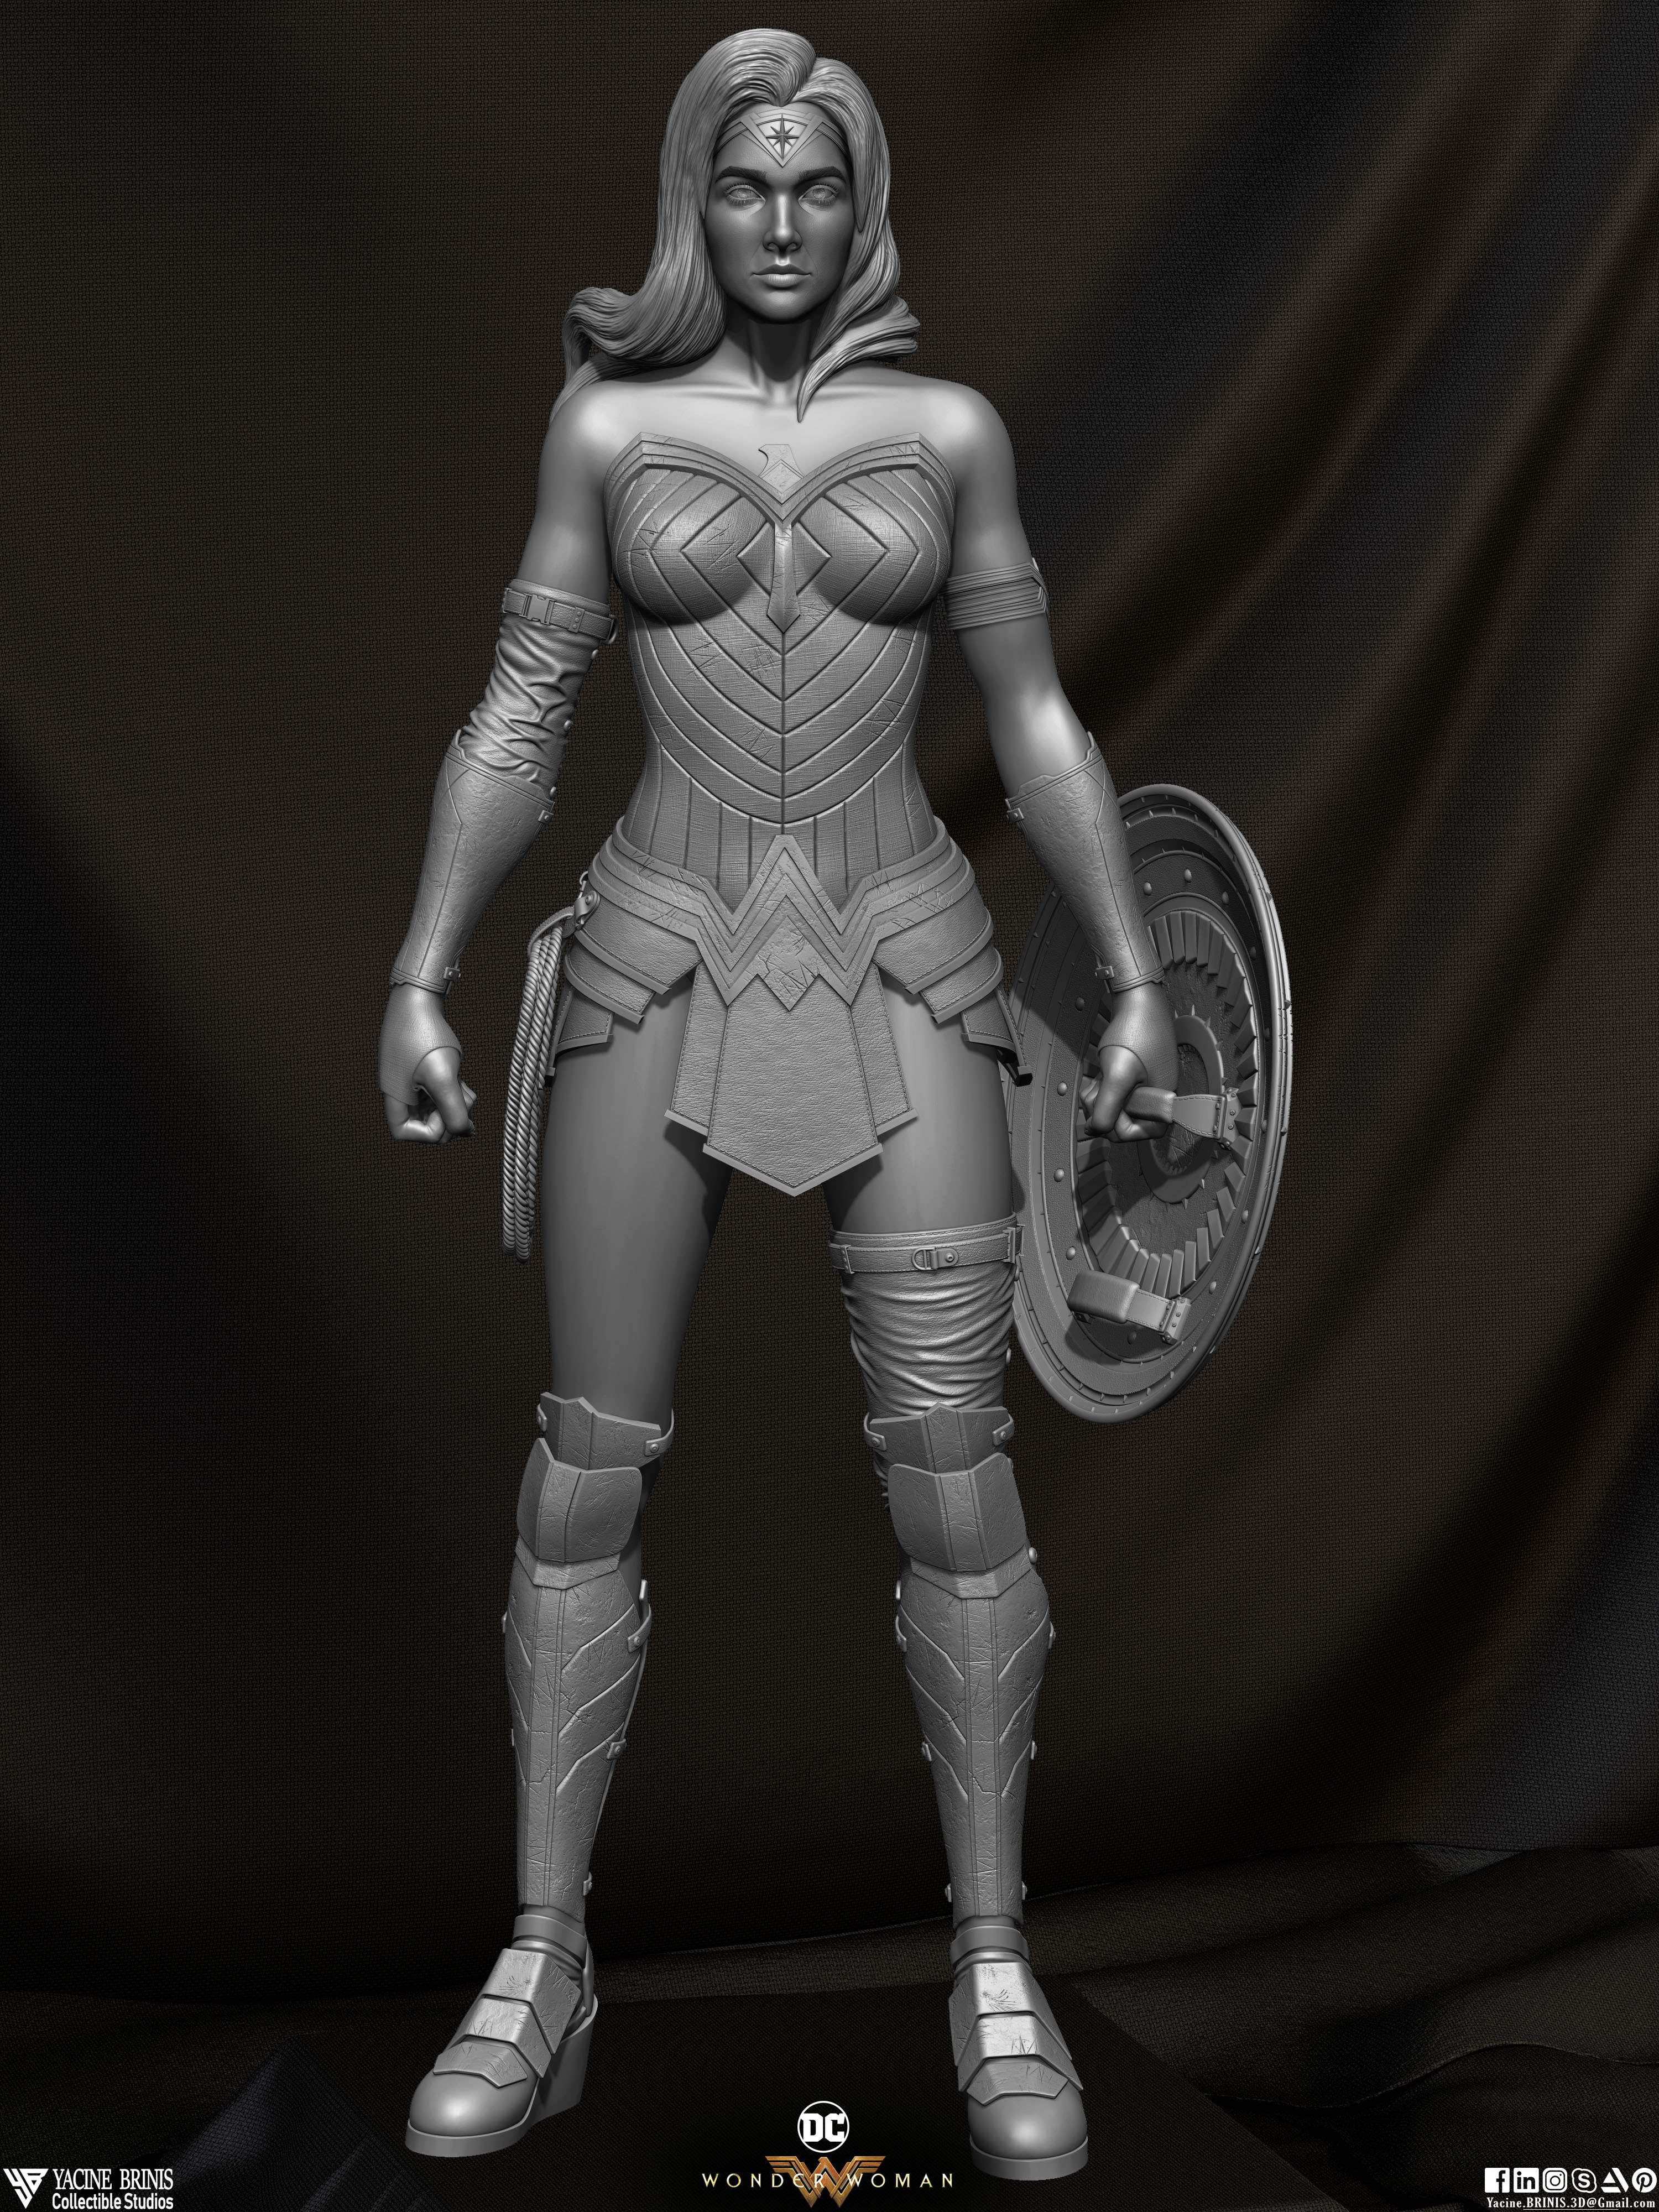 Wonder Woman ZBrush Version, Personal Project (Sculpted By Yacine BRINIS) Set 02